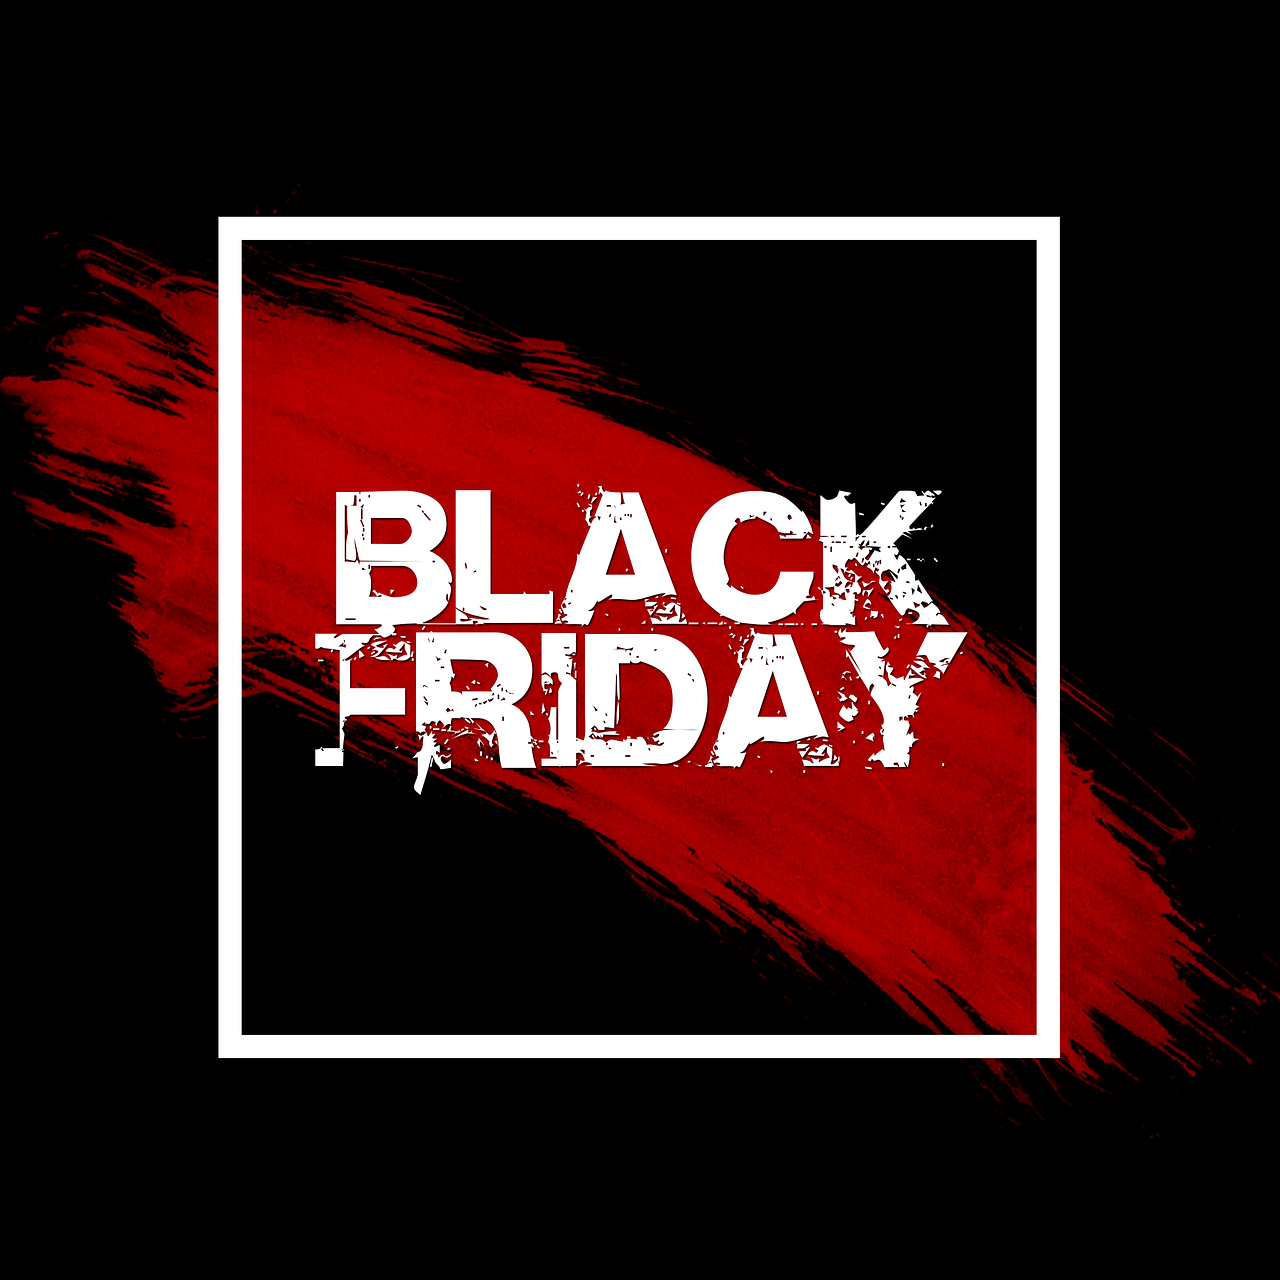 Black Friday e odontologia